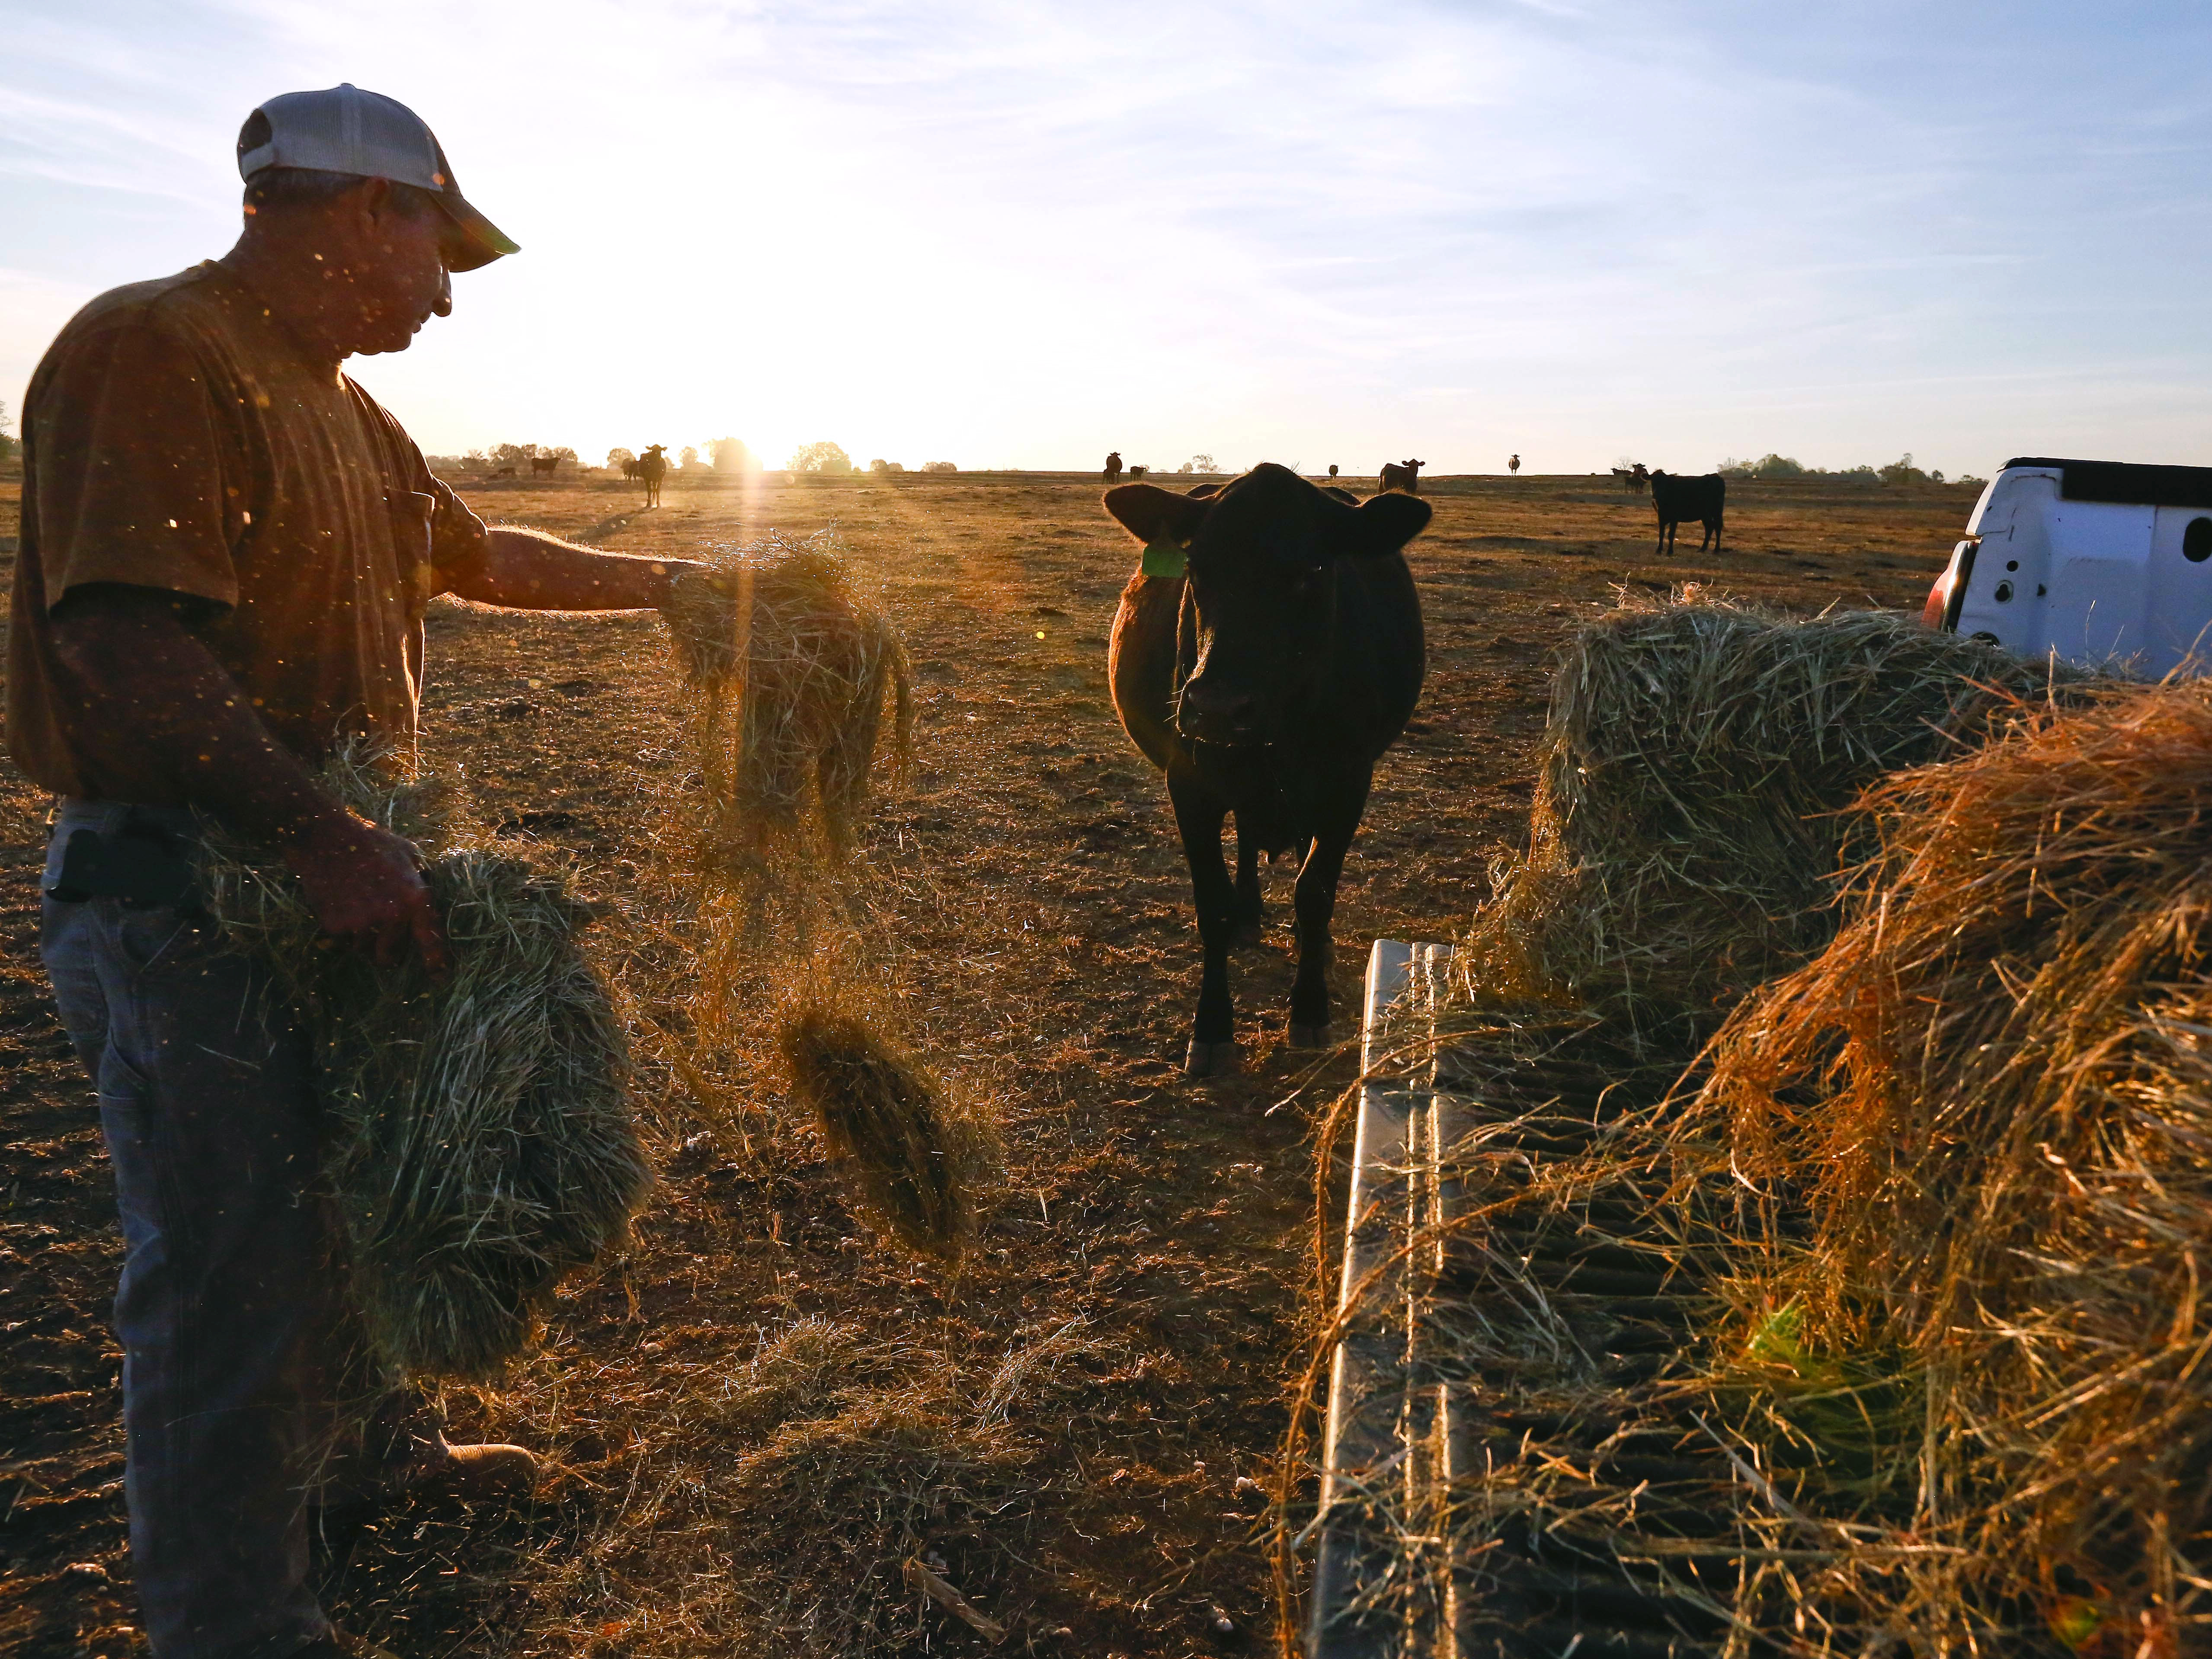 David Bailey tosses hay to one of his remaining cows in Dawson, Ala., on Oct. 26. Bailey had to sell off half of his cattle herd — more than 100 animals — because he doesn't have enough hay to feed them through the winter.